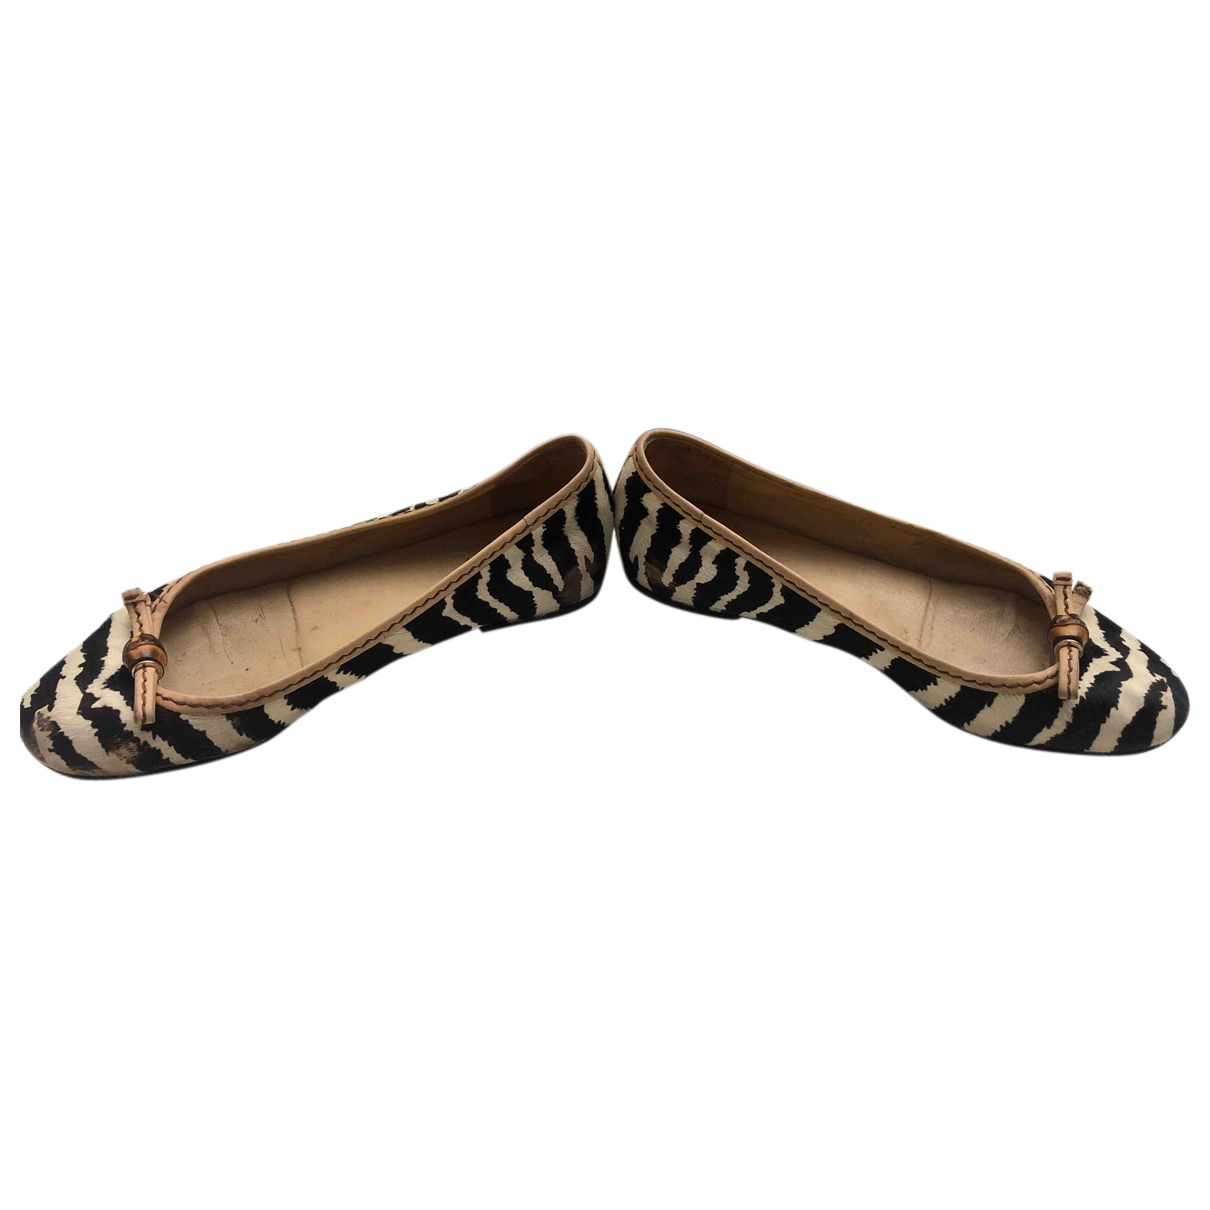 Gucci N Multicolour Leather Flats for Women 35 EU